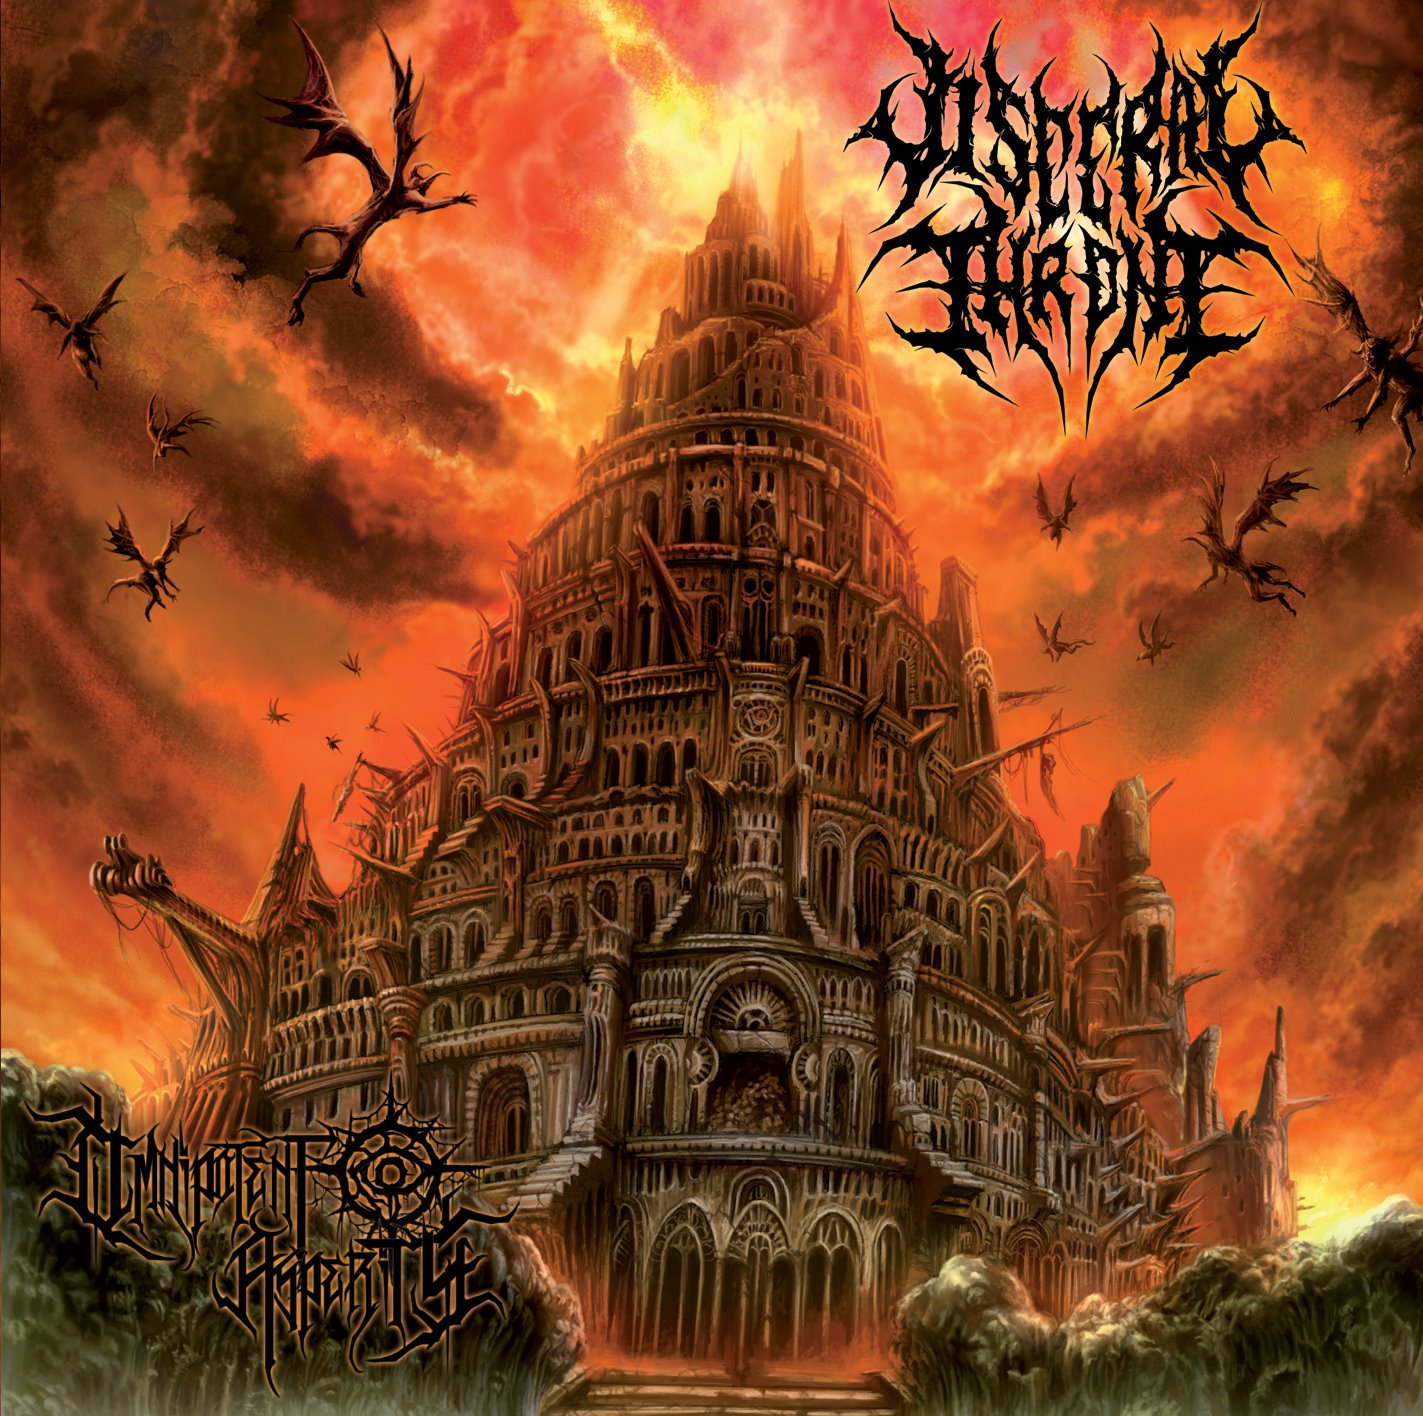 News Added Apr 30, 2012 Artist: Visceral Throne Album: Omnipotent Asperity Year: 2012 Genre: Technical Brutal Death Metal Country: United States Submitted By Nii Track list: Added Apr 30, 2012 01. The Amaranthine 02. Omnipotent Asperity 03. Epitaph 04. Transcending Carnality 05. Conceptual Metamorphosis 06. Inherent Spiral of the Human Continuum 07. Ignorant Persistence 08. […]